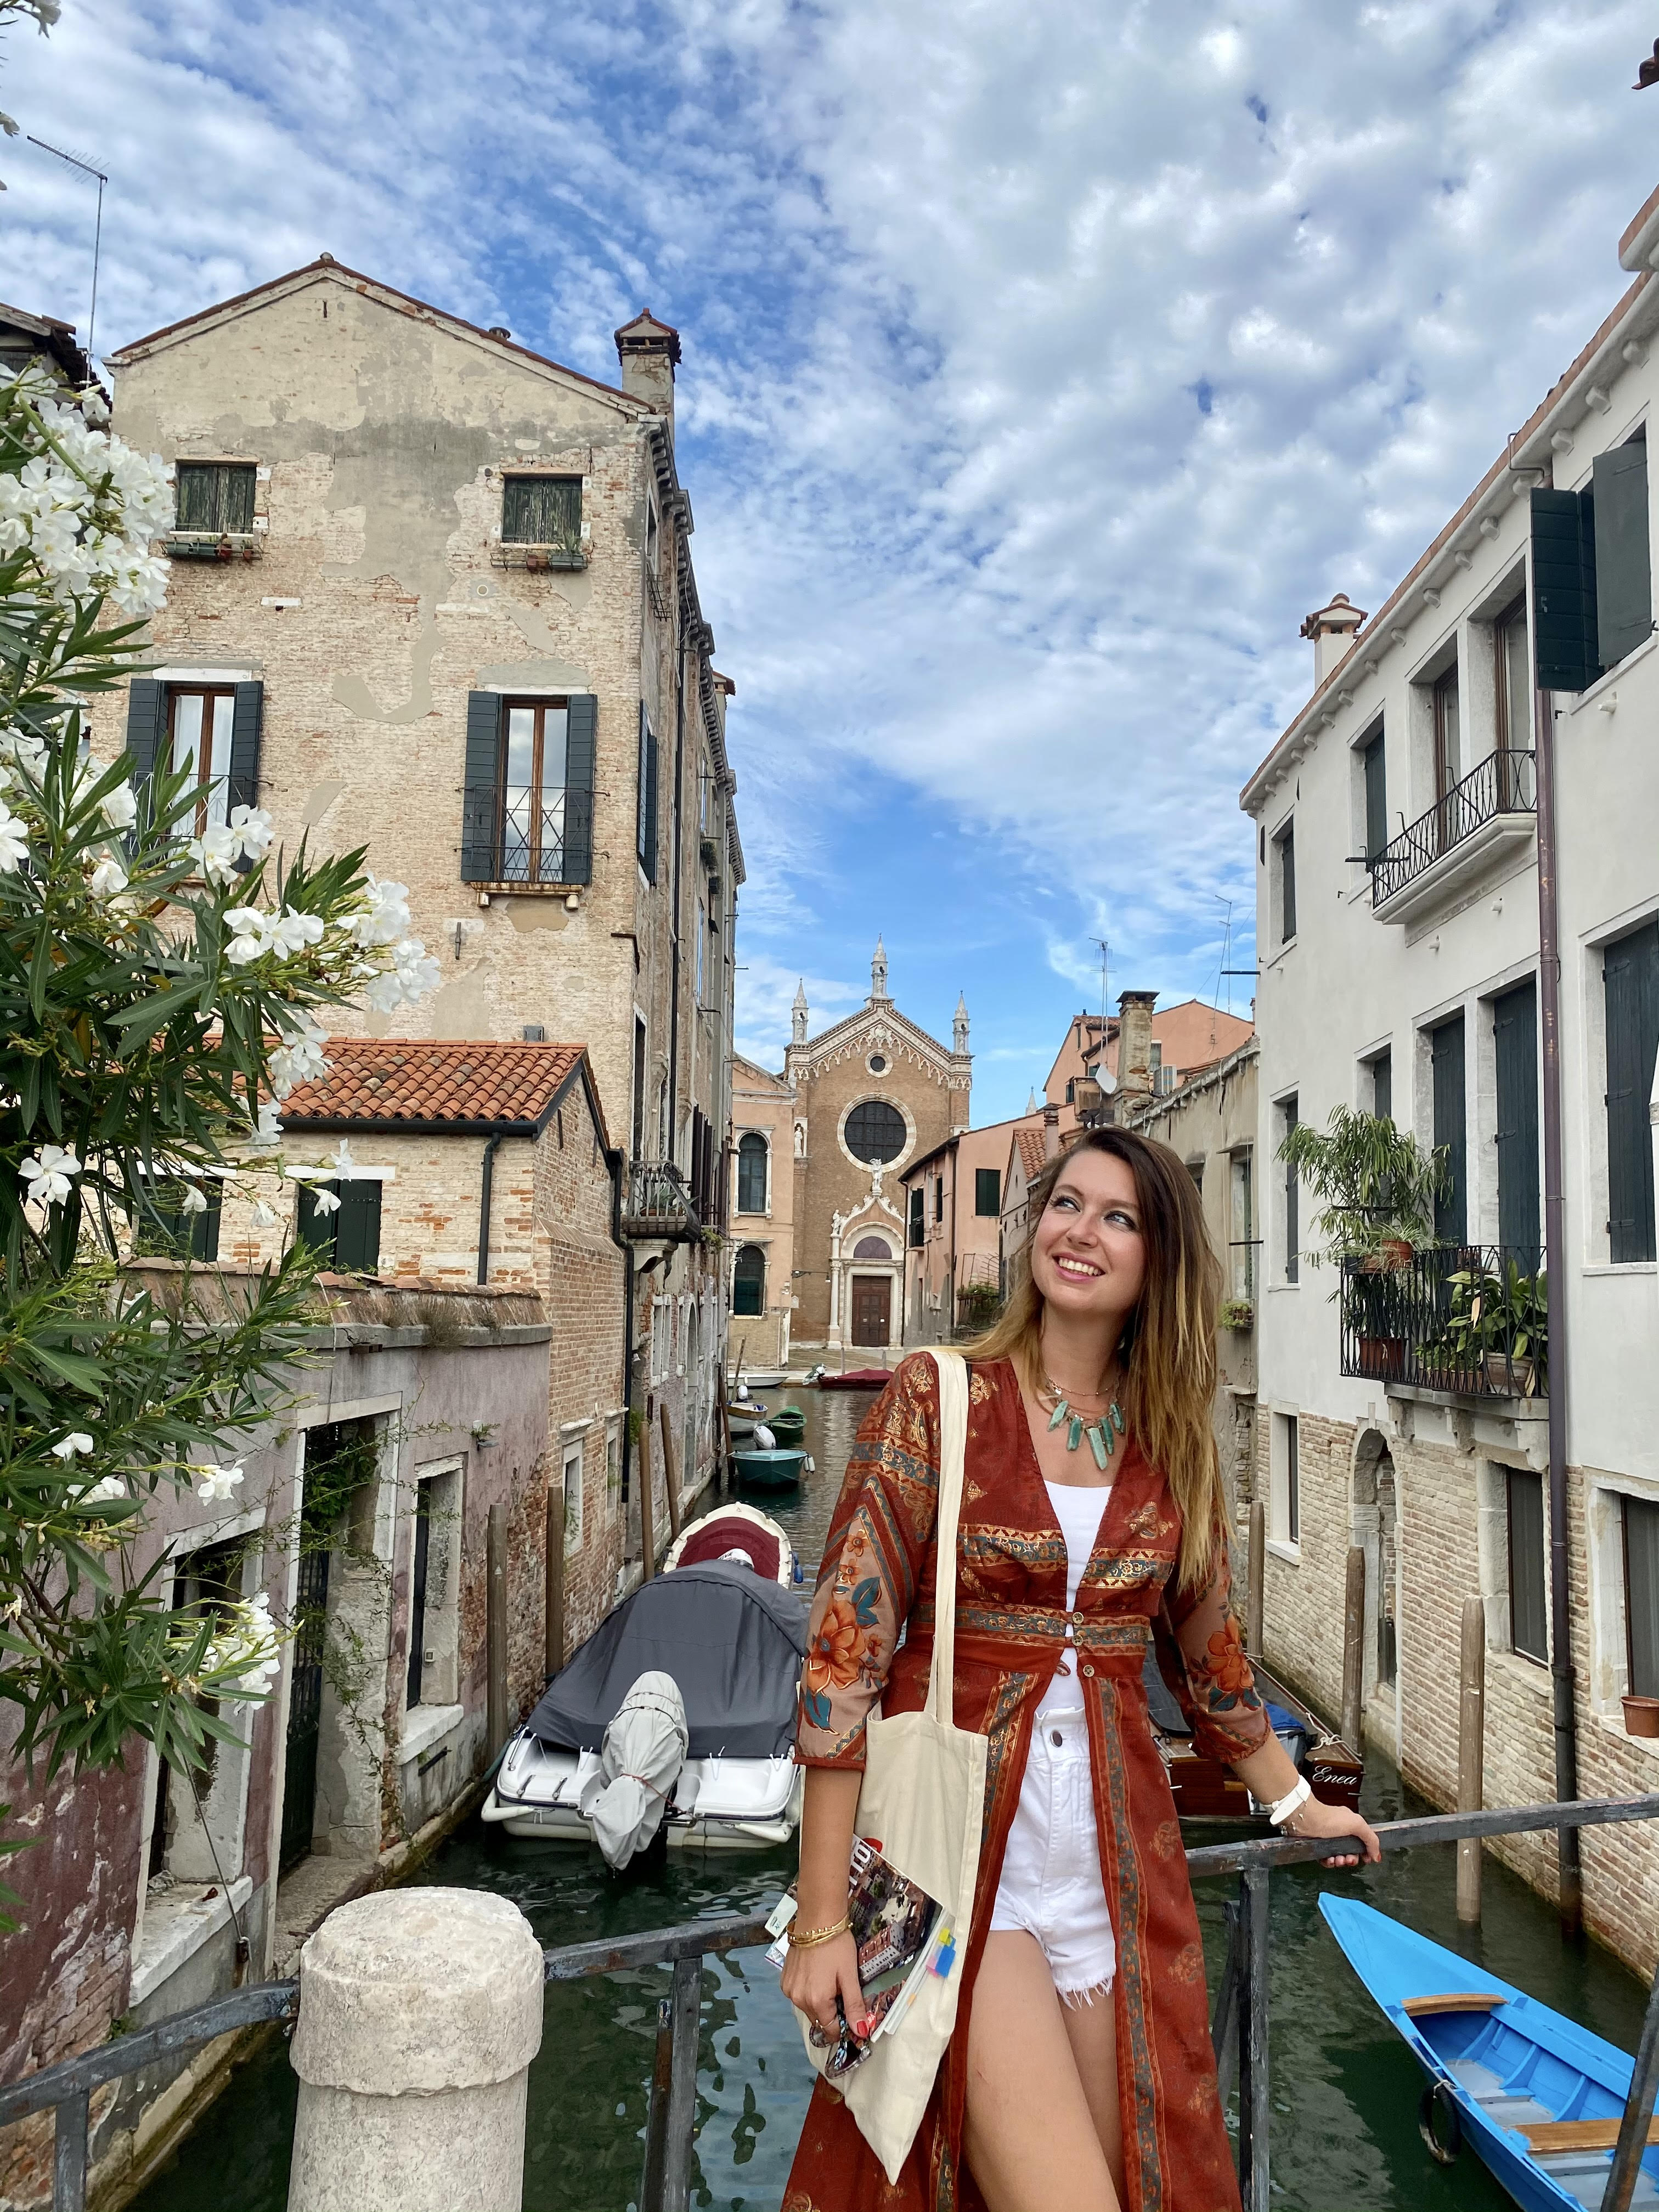 Let's discover the highlights of Venice with a local art historian